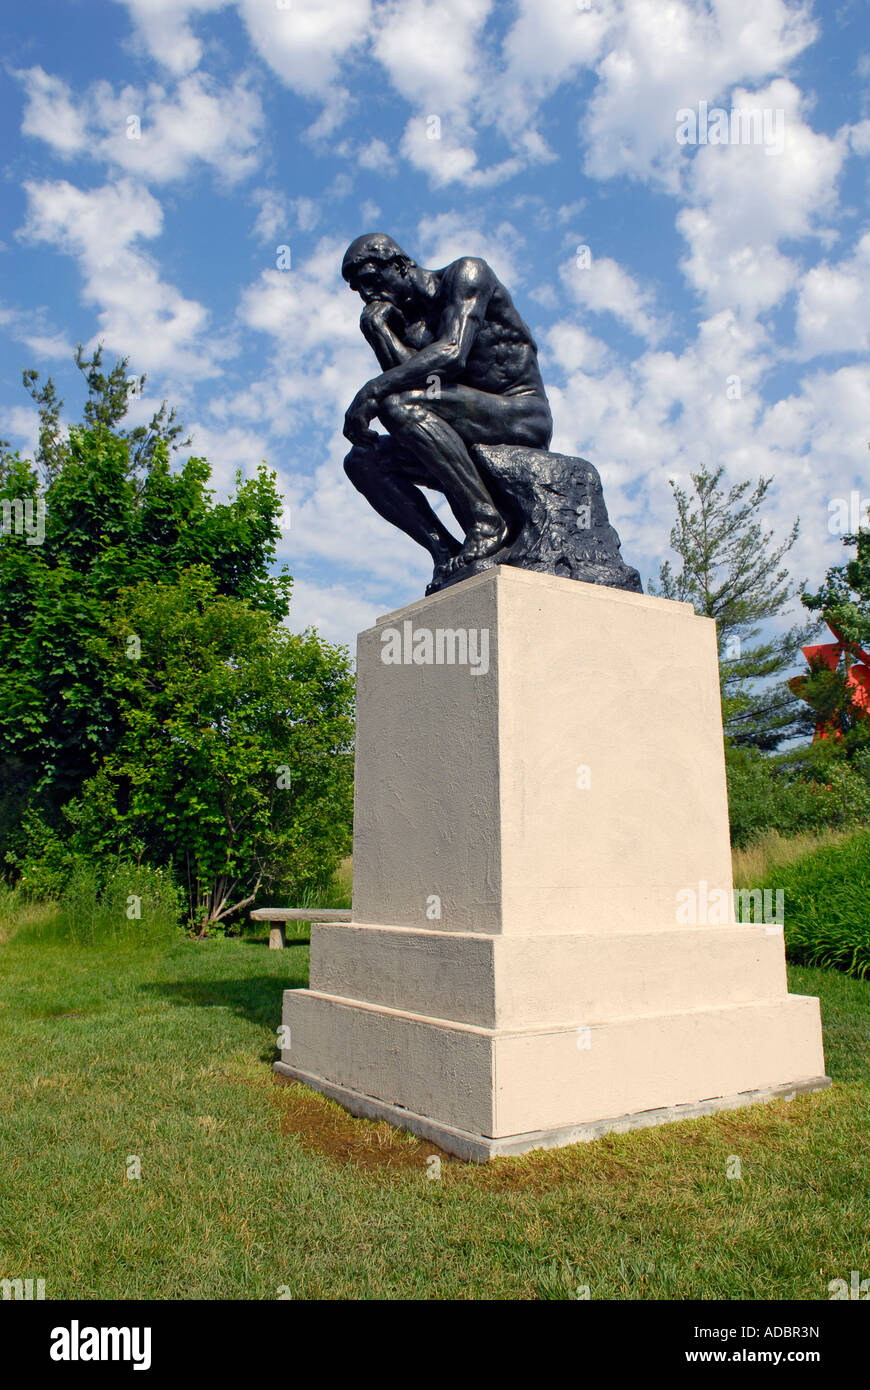 The Thinker 1904 by Auguste Rodin at the Frederik Meijer Gardens and Sculpture Park in Grand Rapids Michigan MI - Stock Image